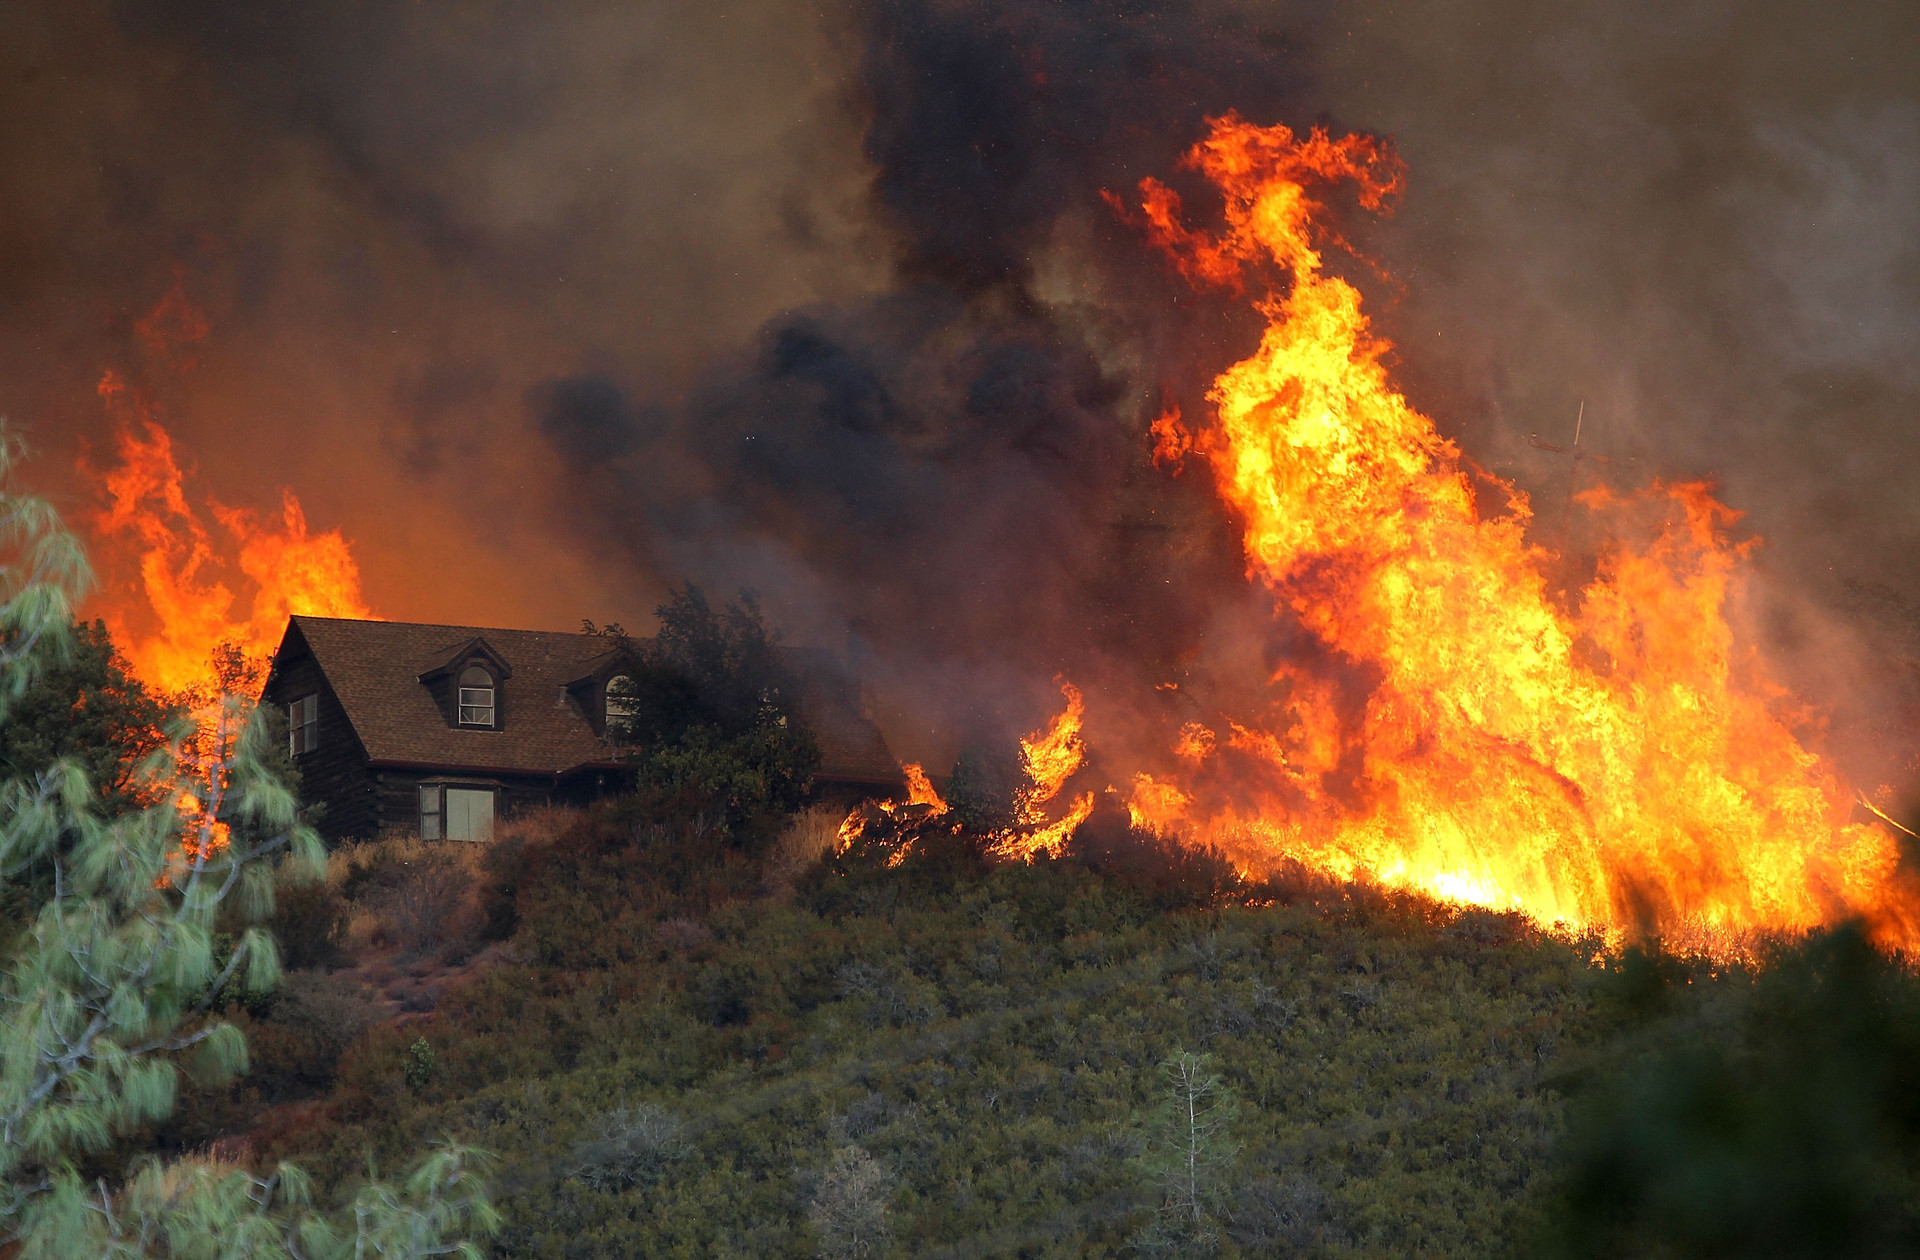 Characterized by its rapid growth, the Rocky Fire claimed nearly 70,000 acres north of the Bay Area in August.